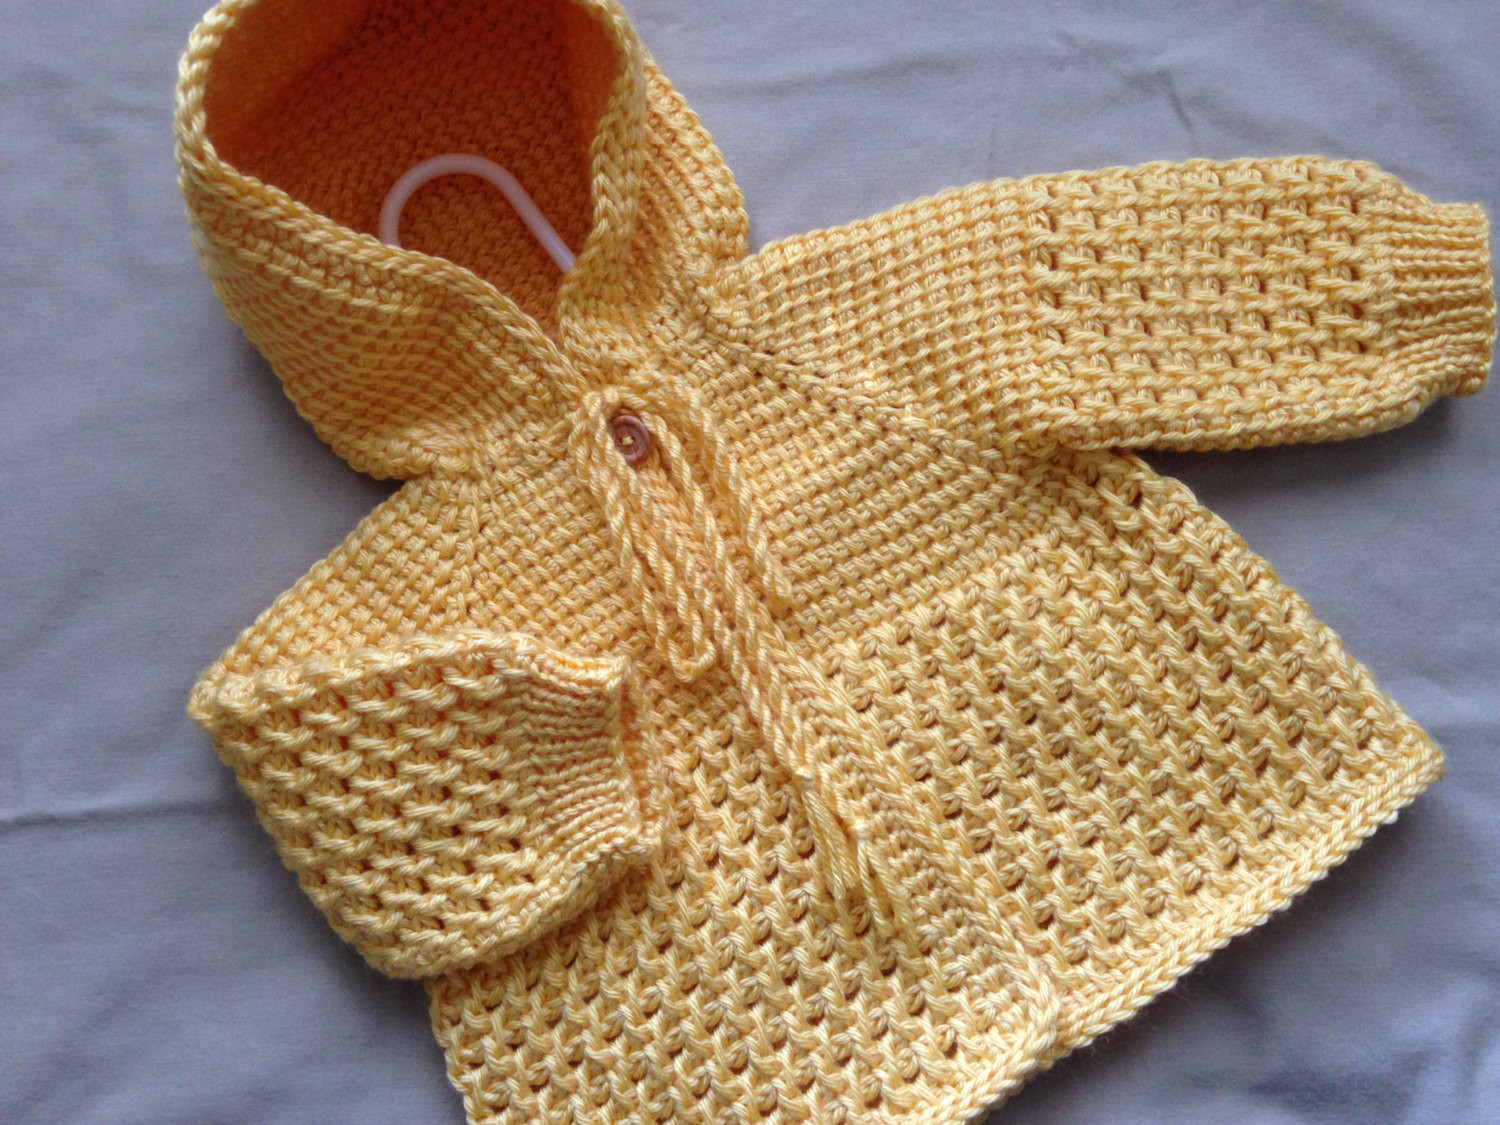 Crochet toddler Sweater New Yellow Crochet Baby Sweater with Hood Tunisian Crochet Of Lovely 50 Photos Crochet toddler Sweater